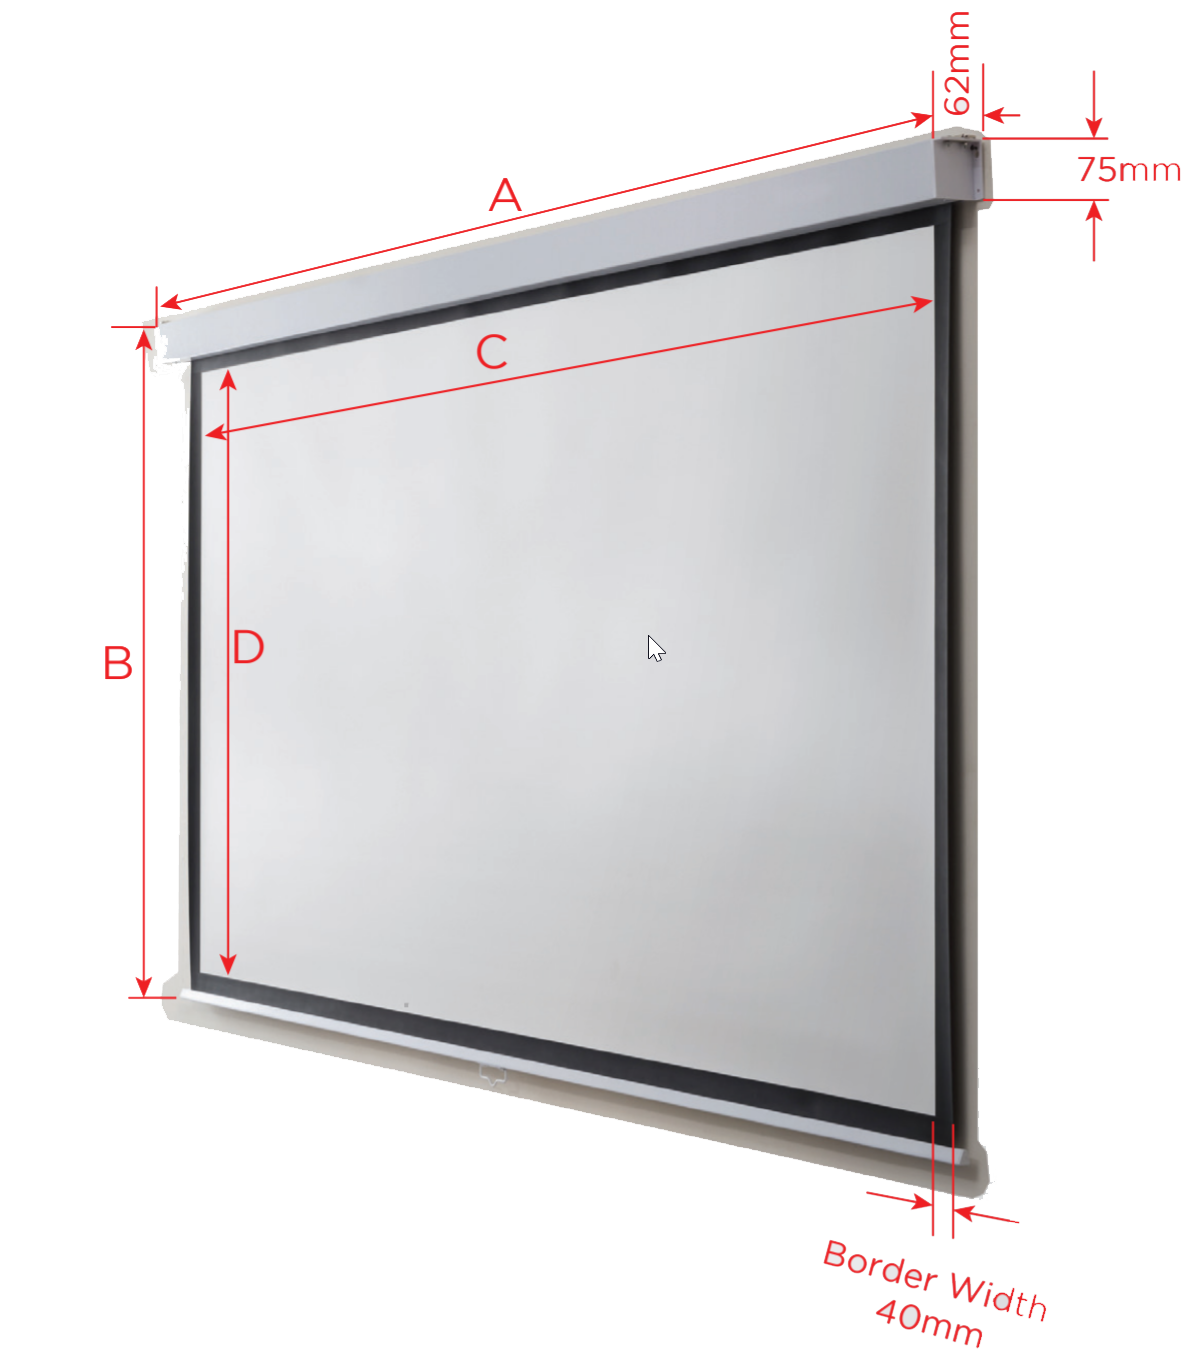 Westinghouse Projector Screen Diagram